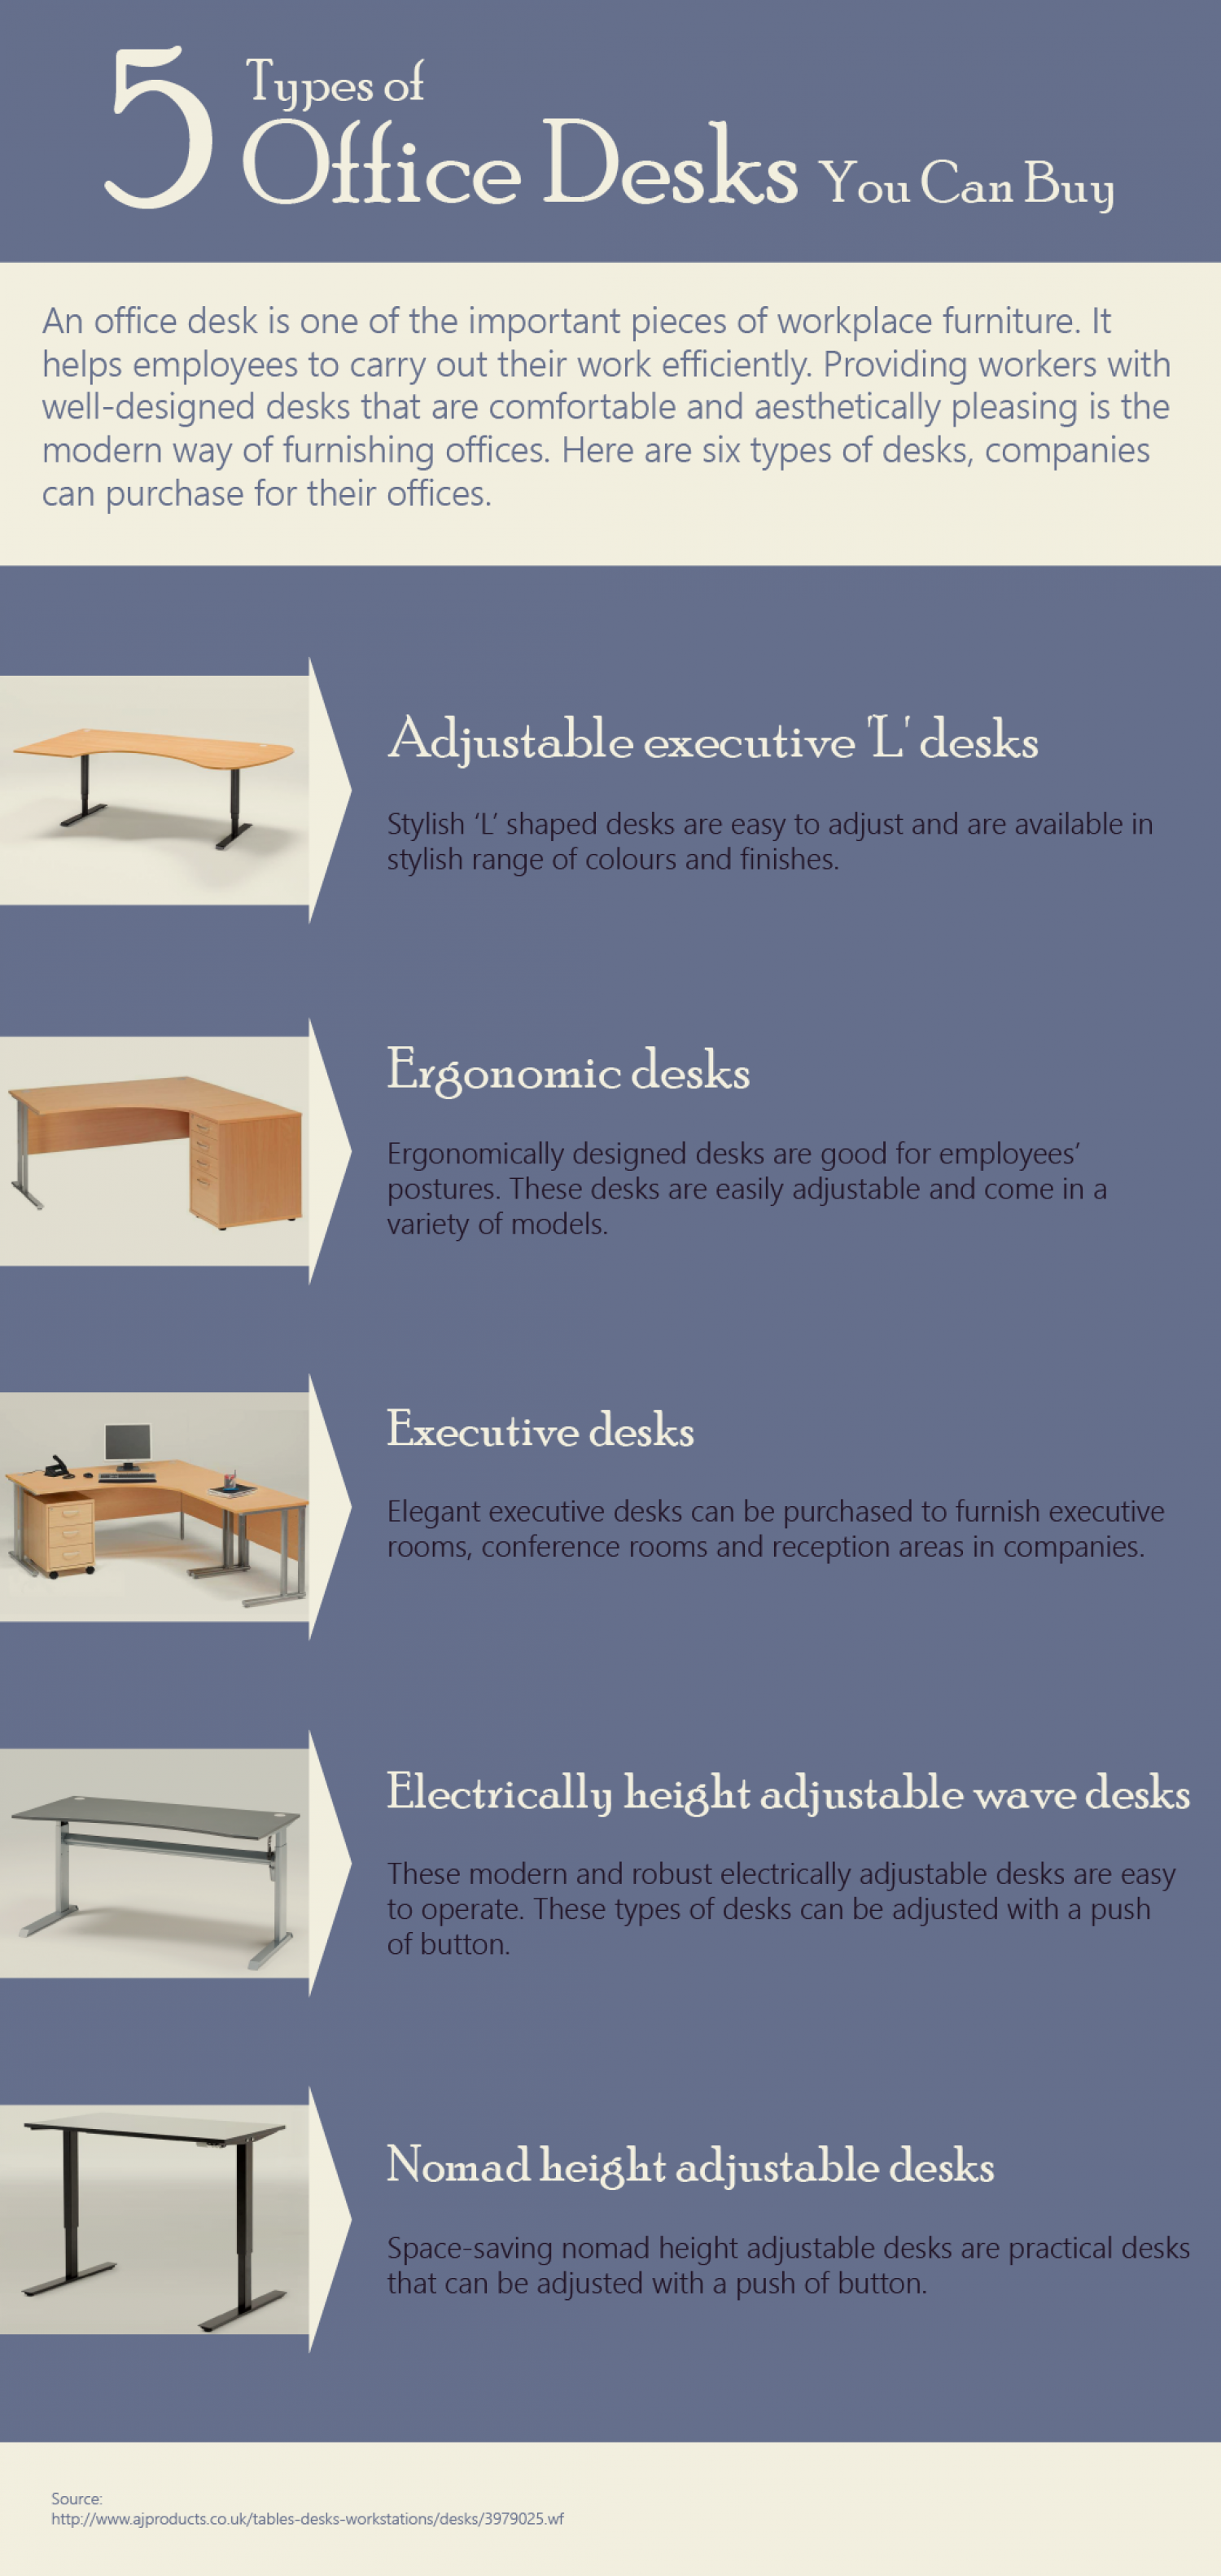 types of office desks you can buy infographic